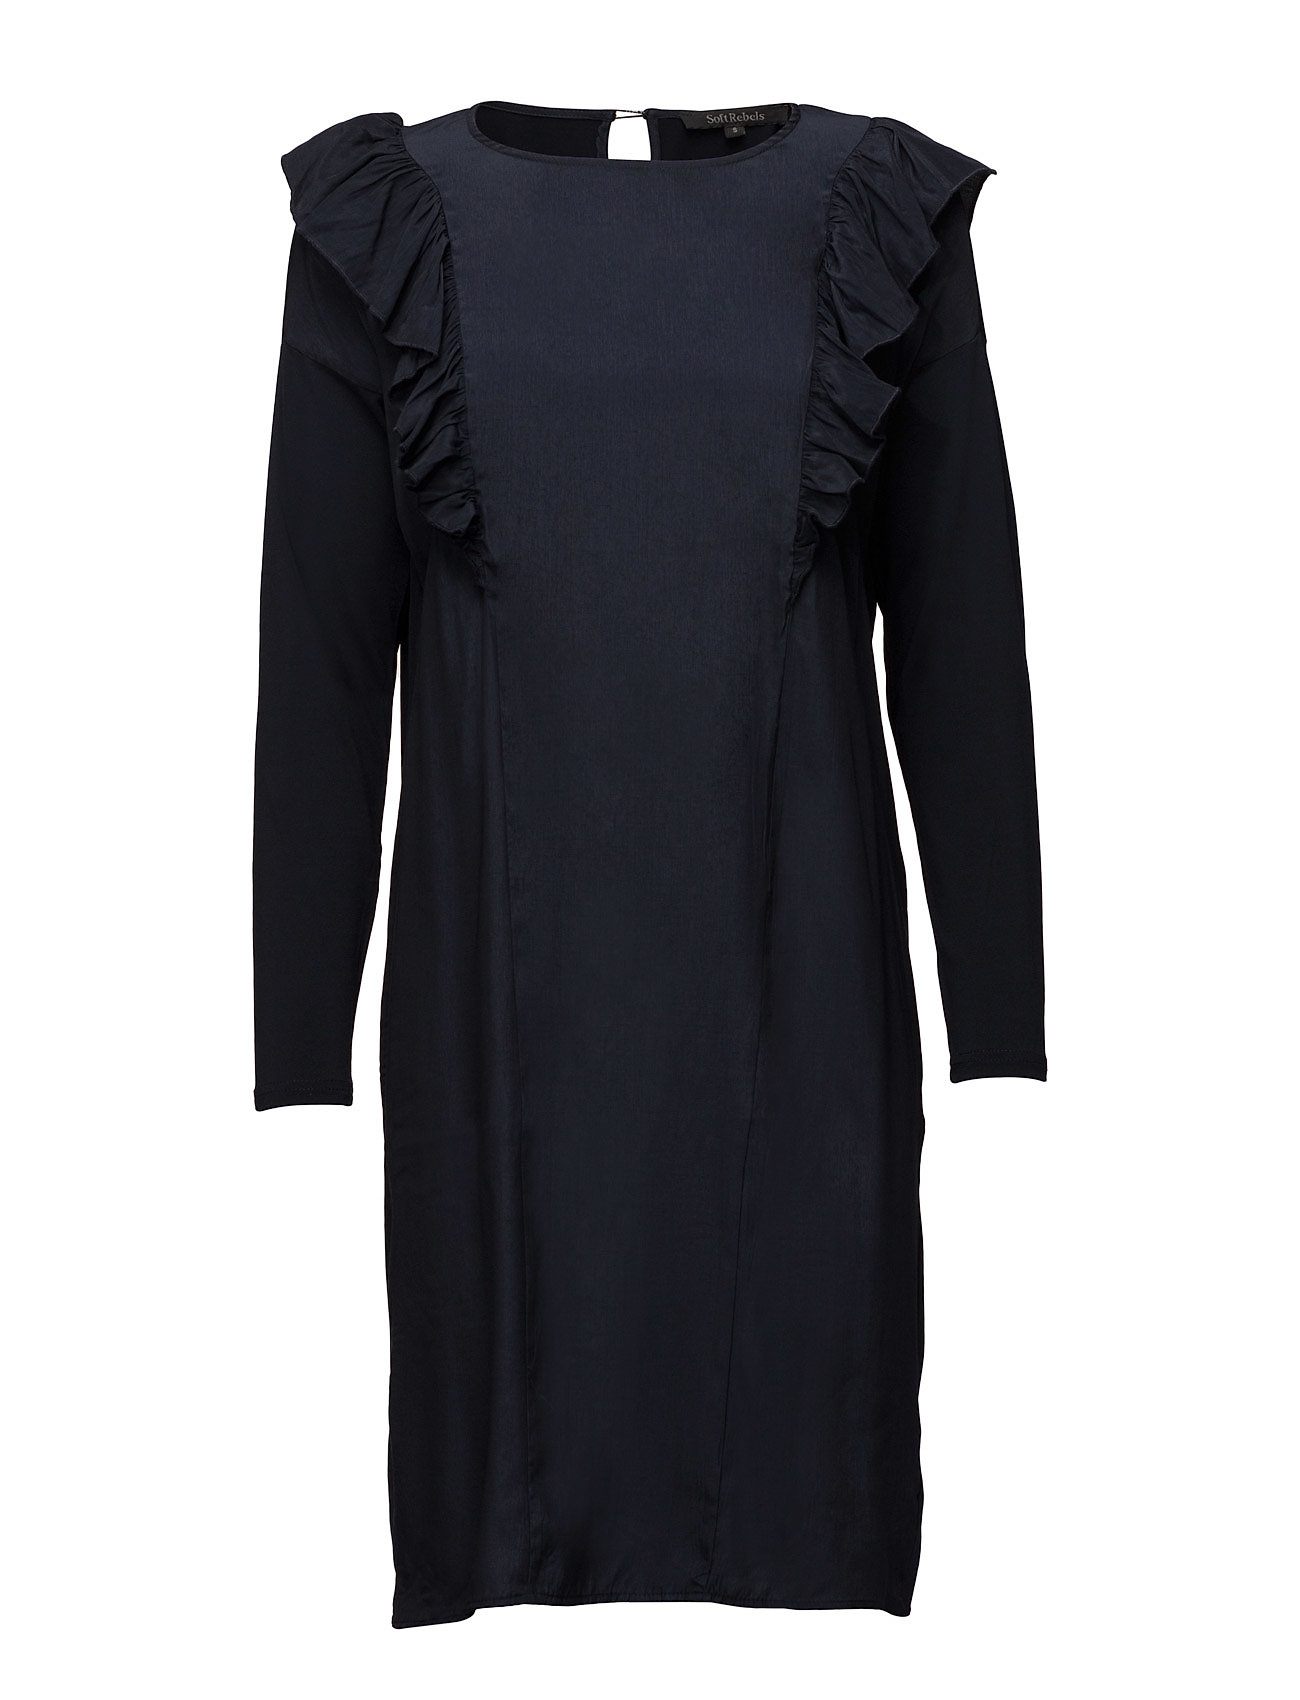 Sofia Dress Soft Rebels Knælange & mellemlange til Damer i 217 Night Sky